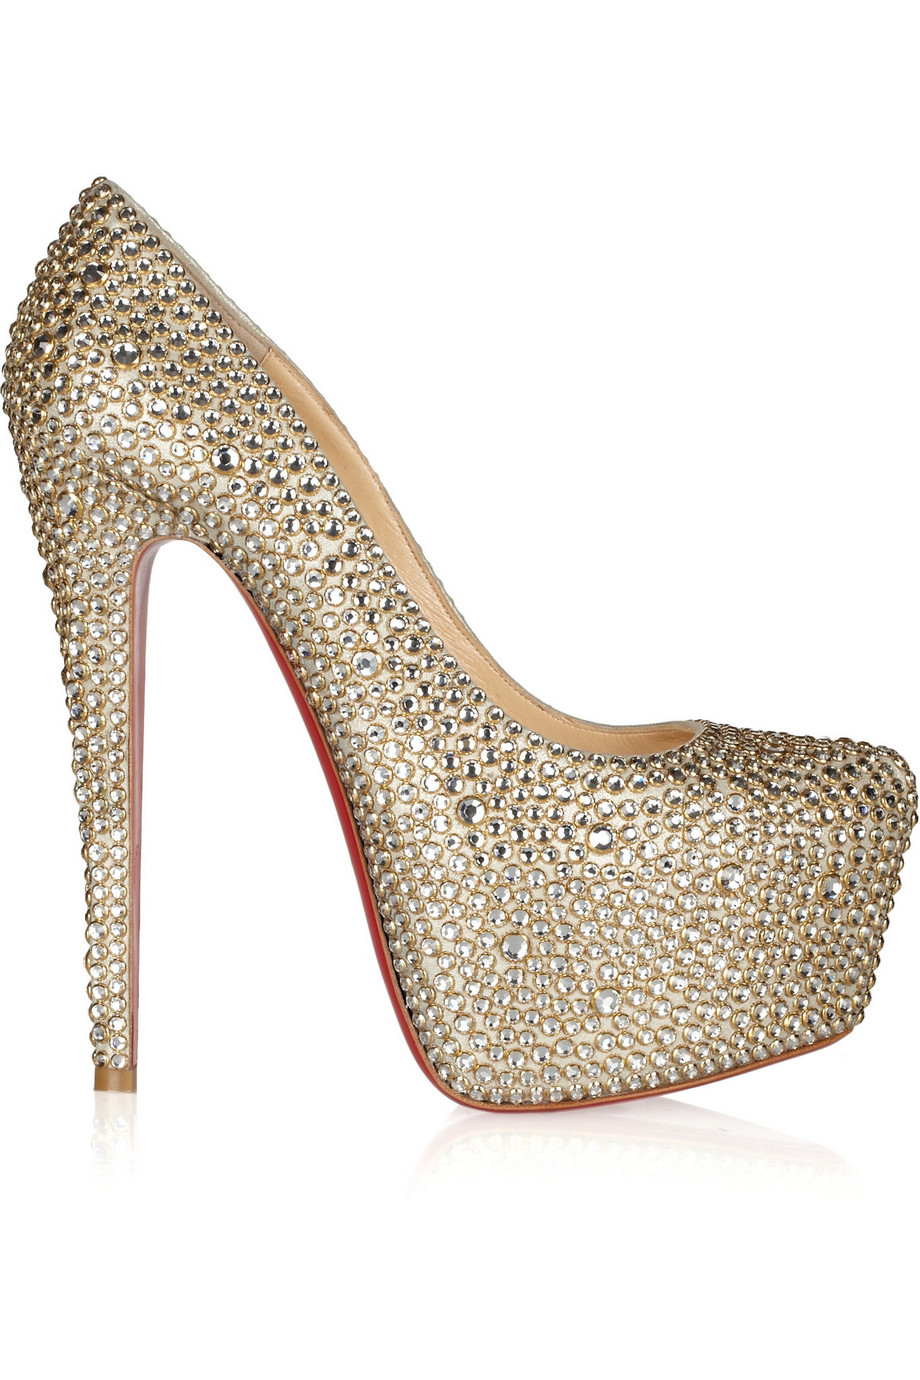 Christian Louboutin Daffodile 160 Crystal-Embellished Suede Pumps, Gold, Women's US Size: 5, Size: 35.5